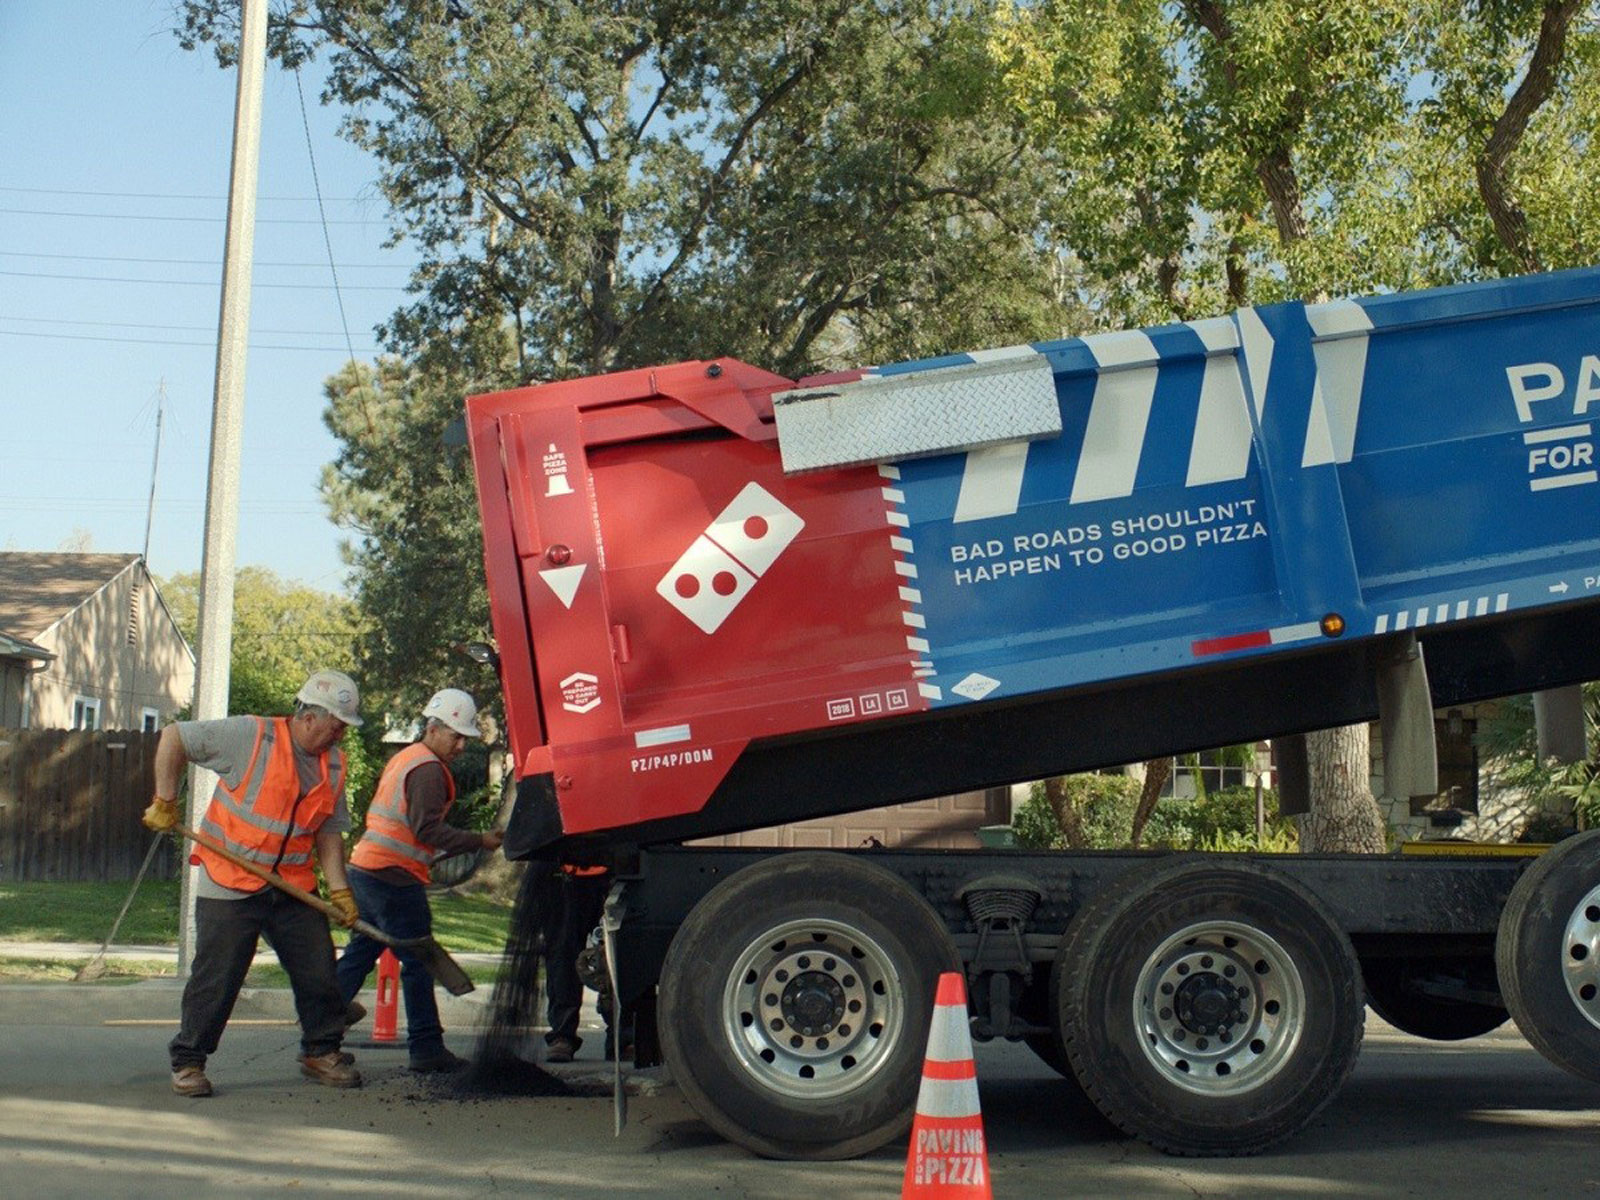 Domino's Pledges to Fix Potholes for a Better Pizza Experience